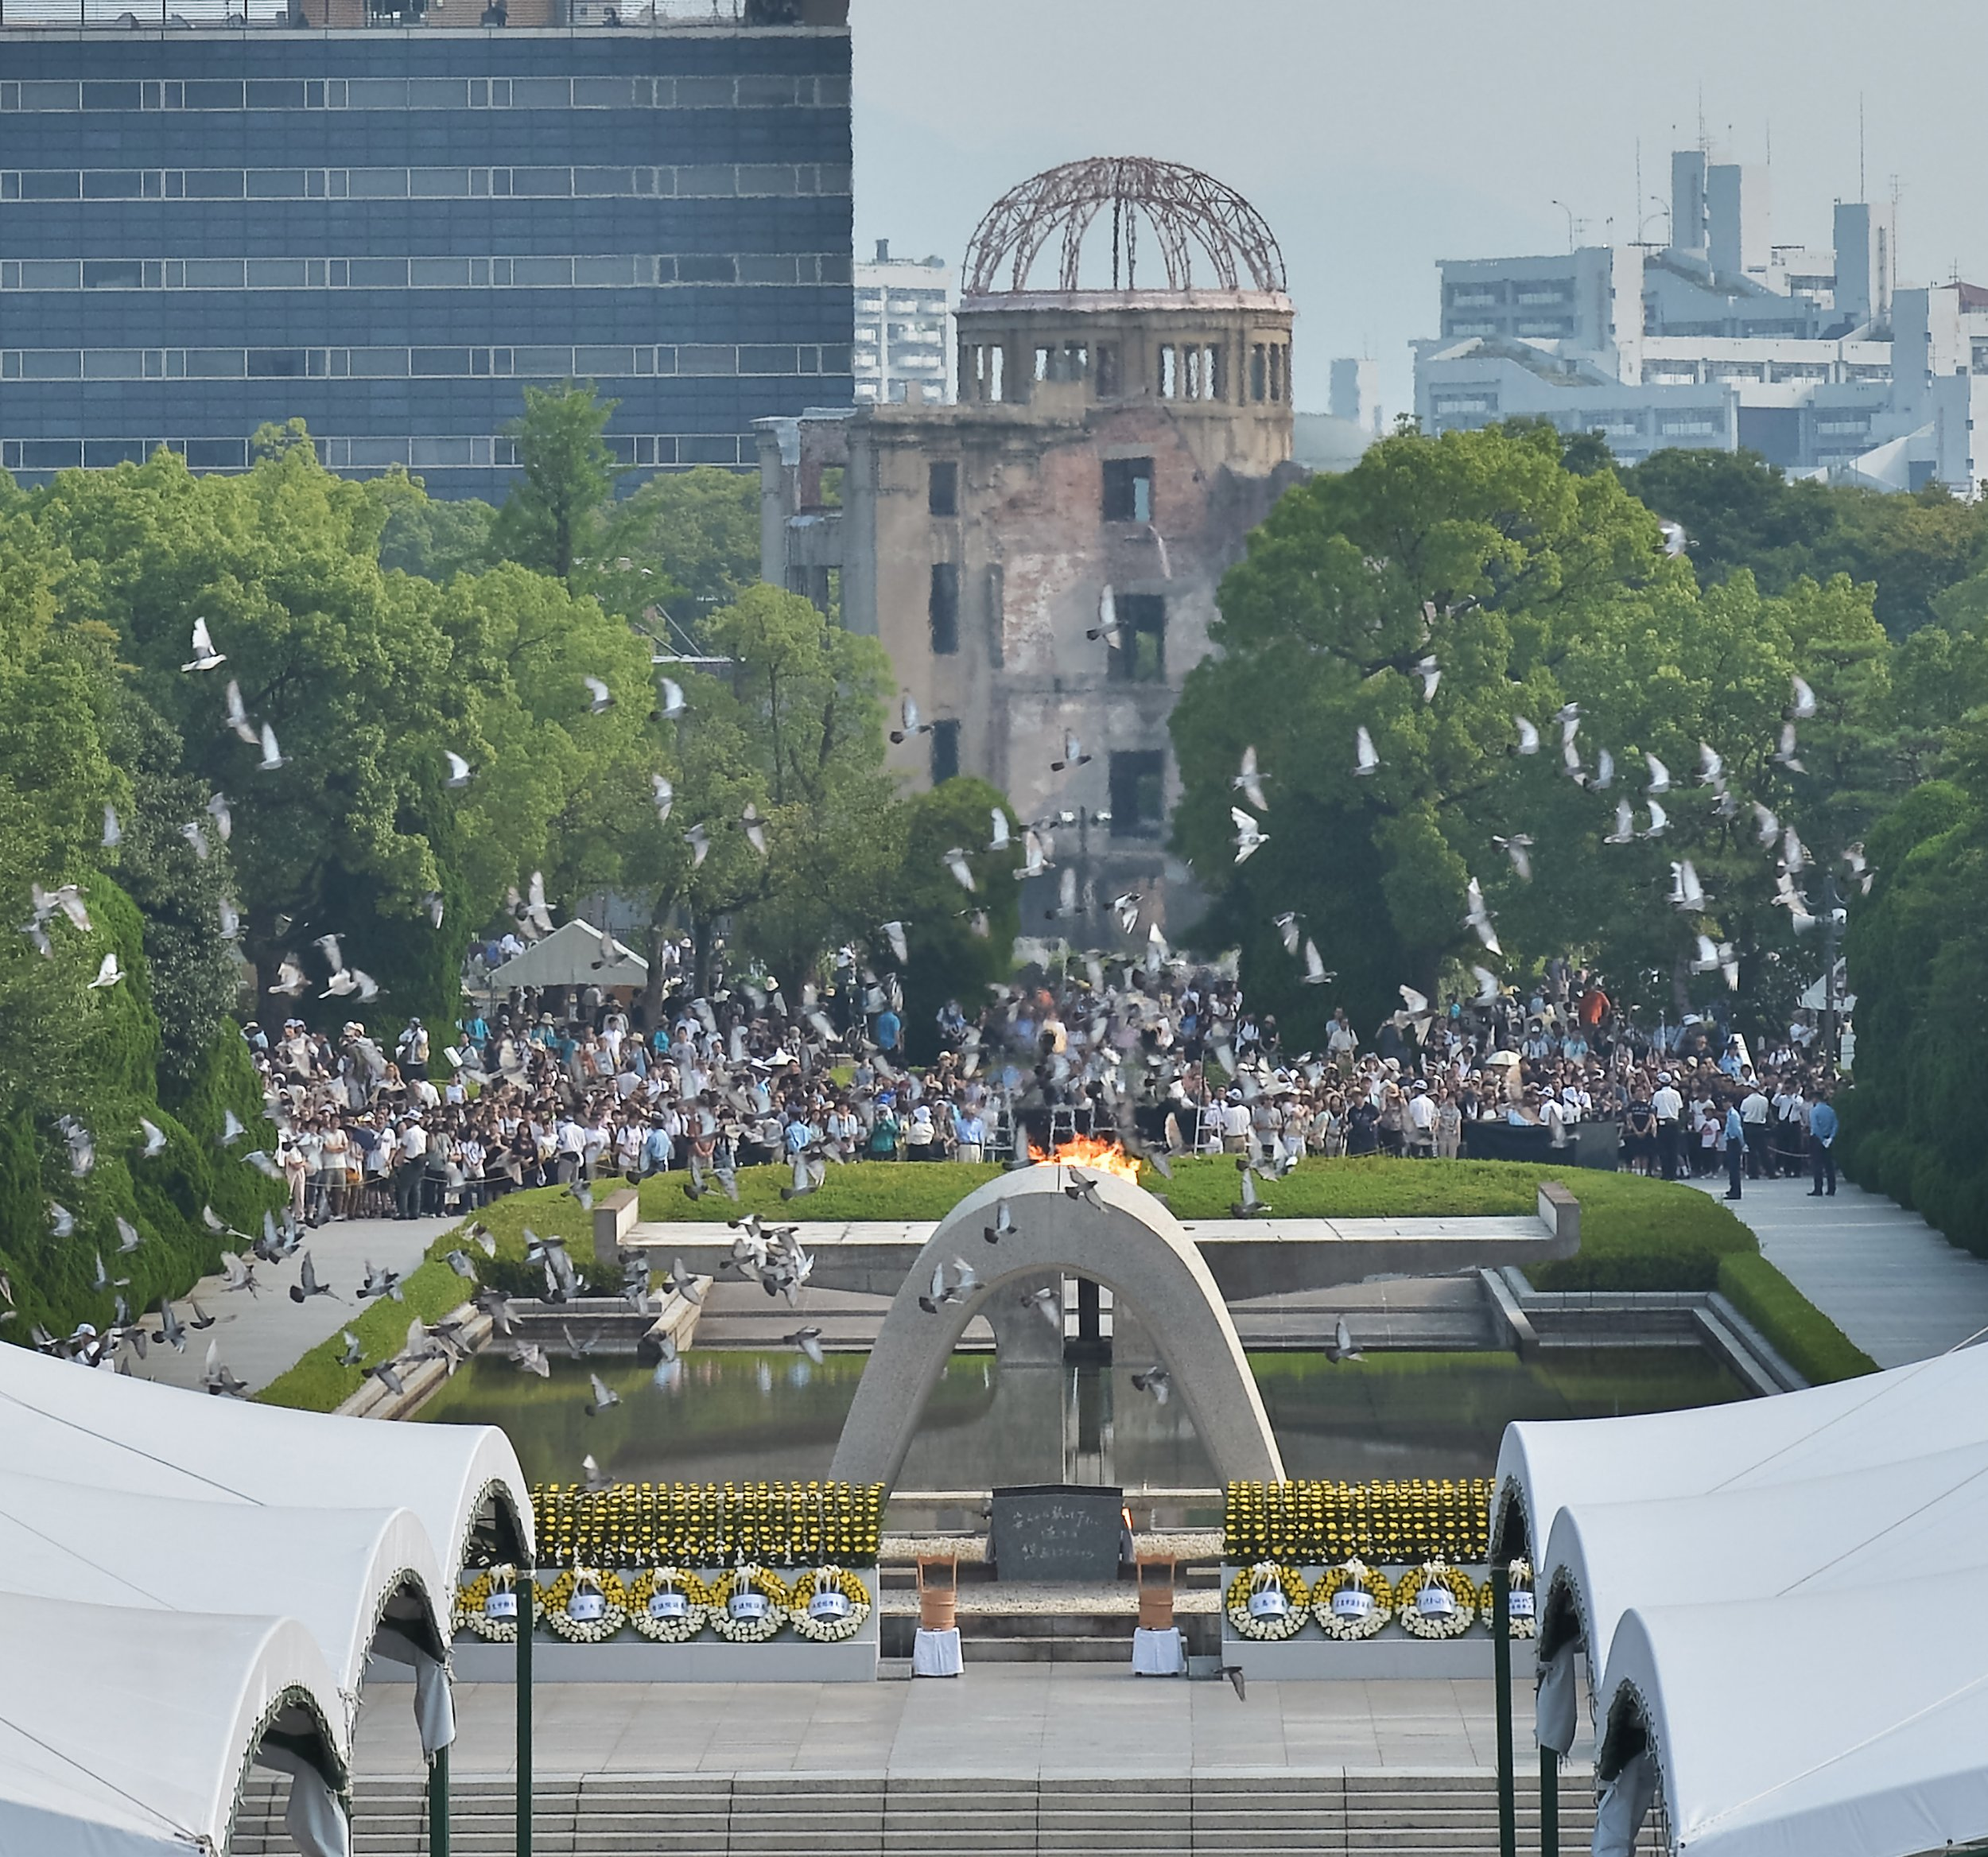 HIROSHIMA, JAPAN - AUGUST 06: People pray for the atomic bomb victims at Hiroshima Peace Memorial Park marking the 71th anniversary of the atomic bombing on August 6, 2016 in Hiroshima, Japan. PHOTOGRAPH BY Aflo / Barcroft Images London-T:+44 207 033 1031 E:hello@barcroftmedia.com - New York-T:+1 212 796 2458 E:hello@barcroftusa.com - New Delhi-T:+91 11 4053 2429 E:hello@barcroftindia.com www.barcroftimages.com